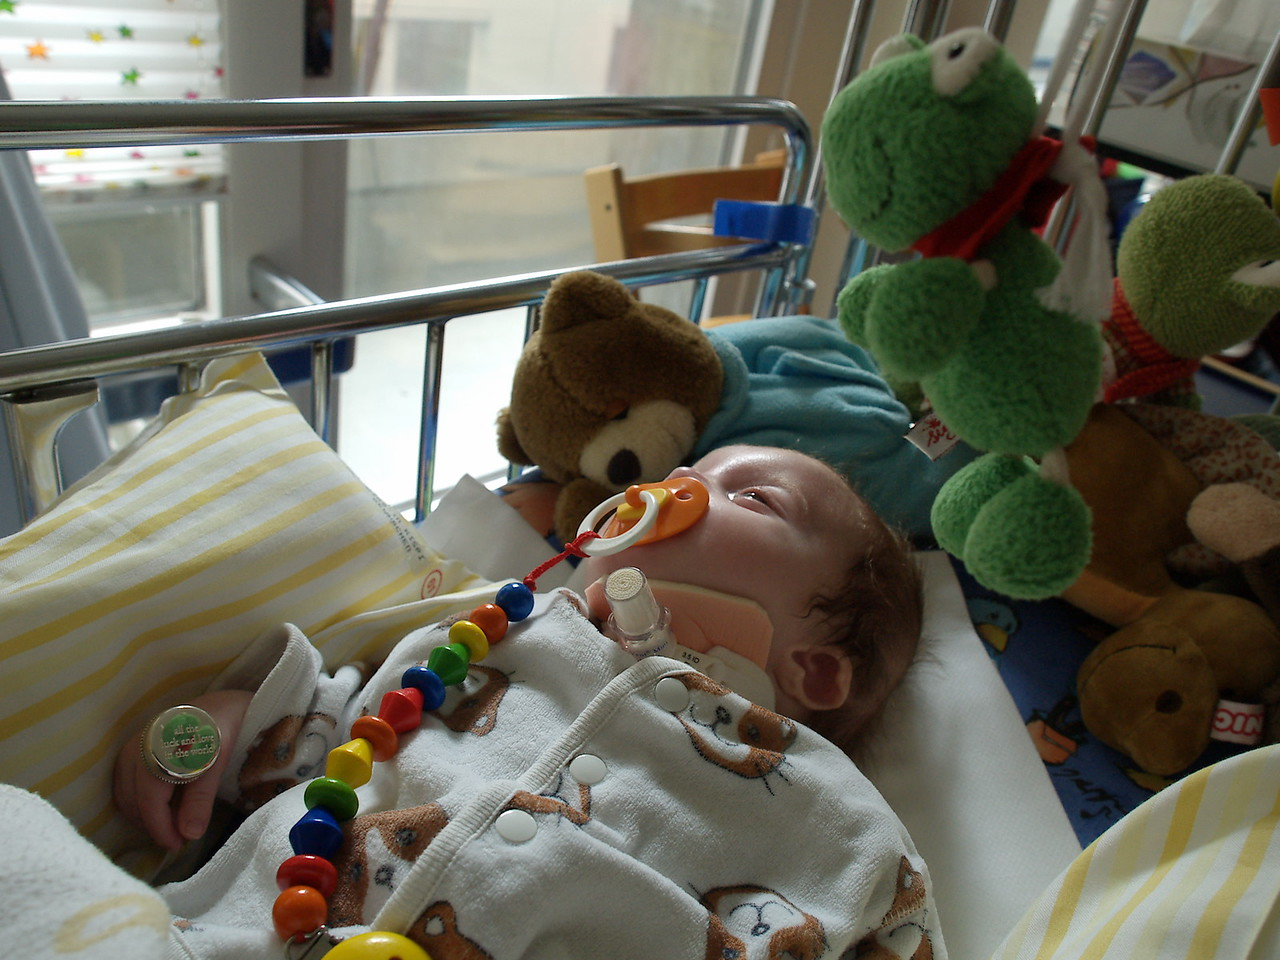 Thursday 2nd Feb 2006 - Now you can see who has been keeping a watch over Cai when we are not there and before you all write in that we are leaving him all alone with a frog and other cuddly toys I meant along with all the nurses of course ;-)